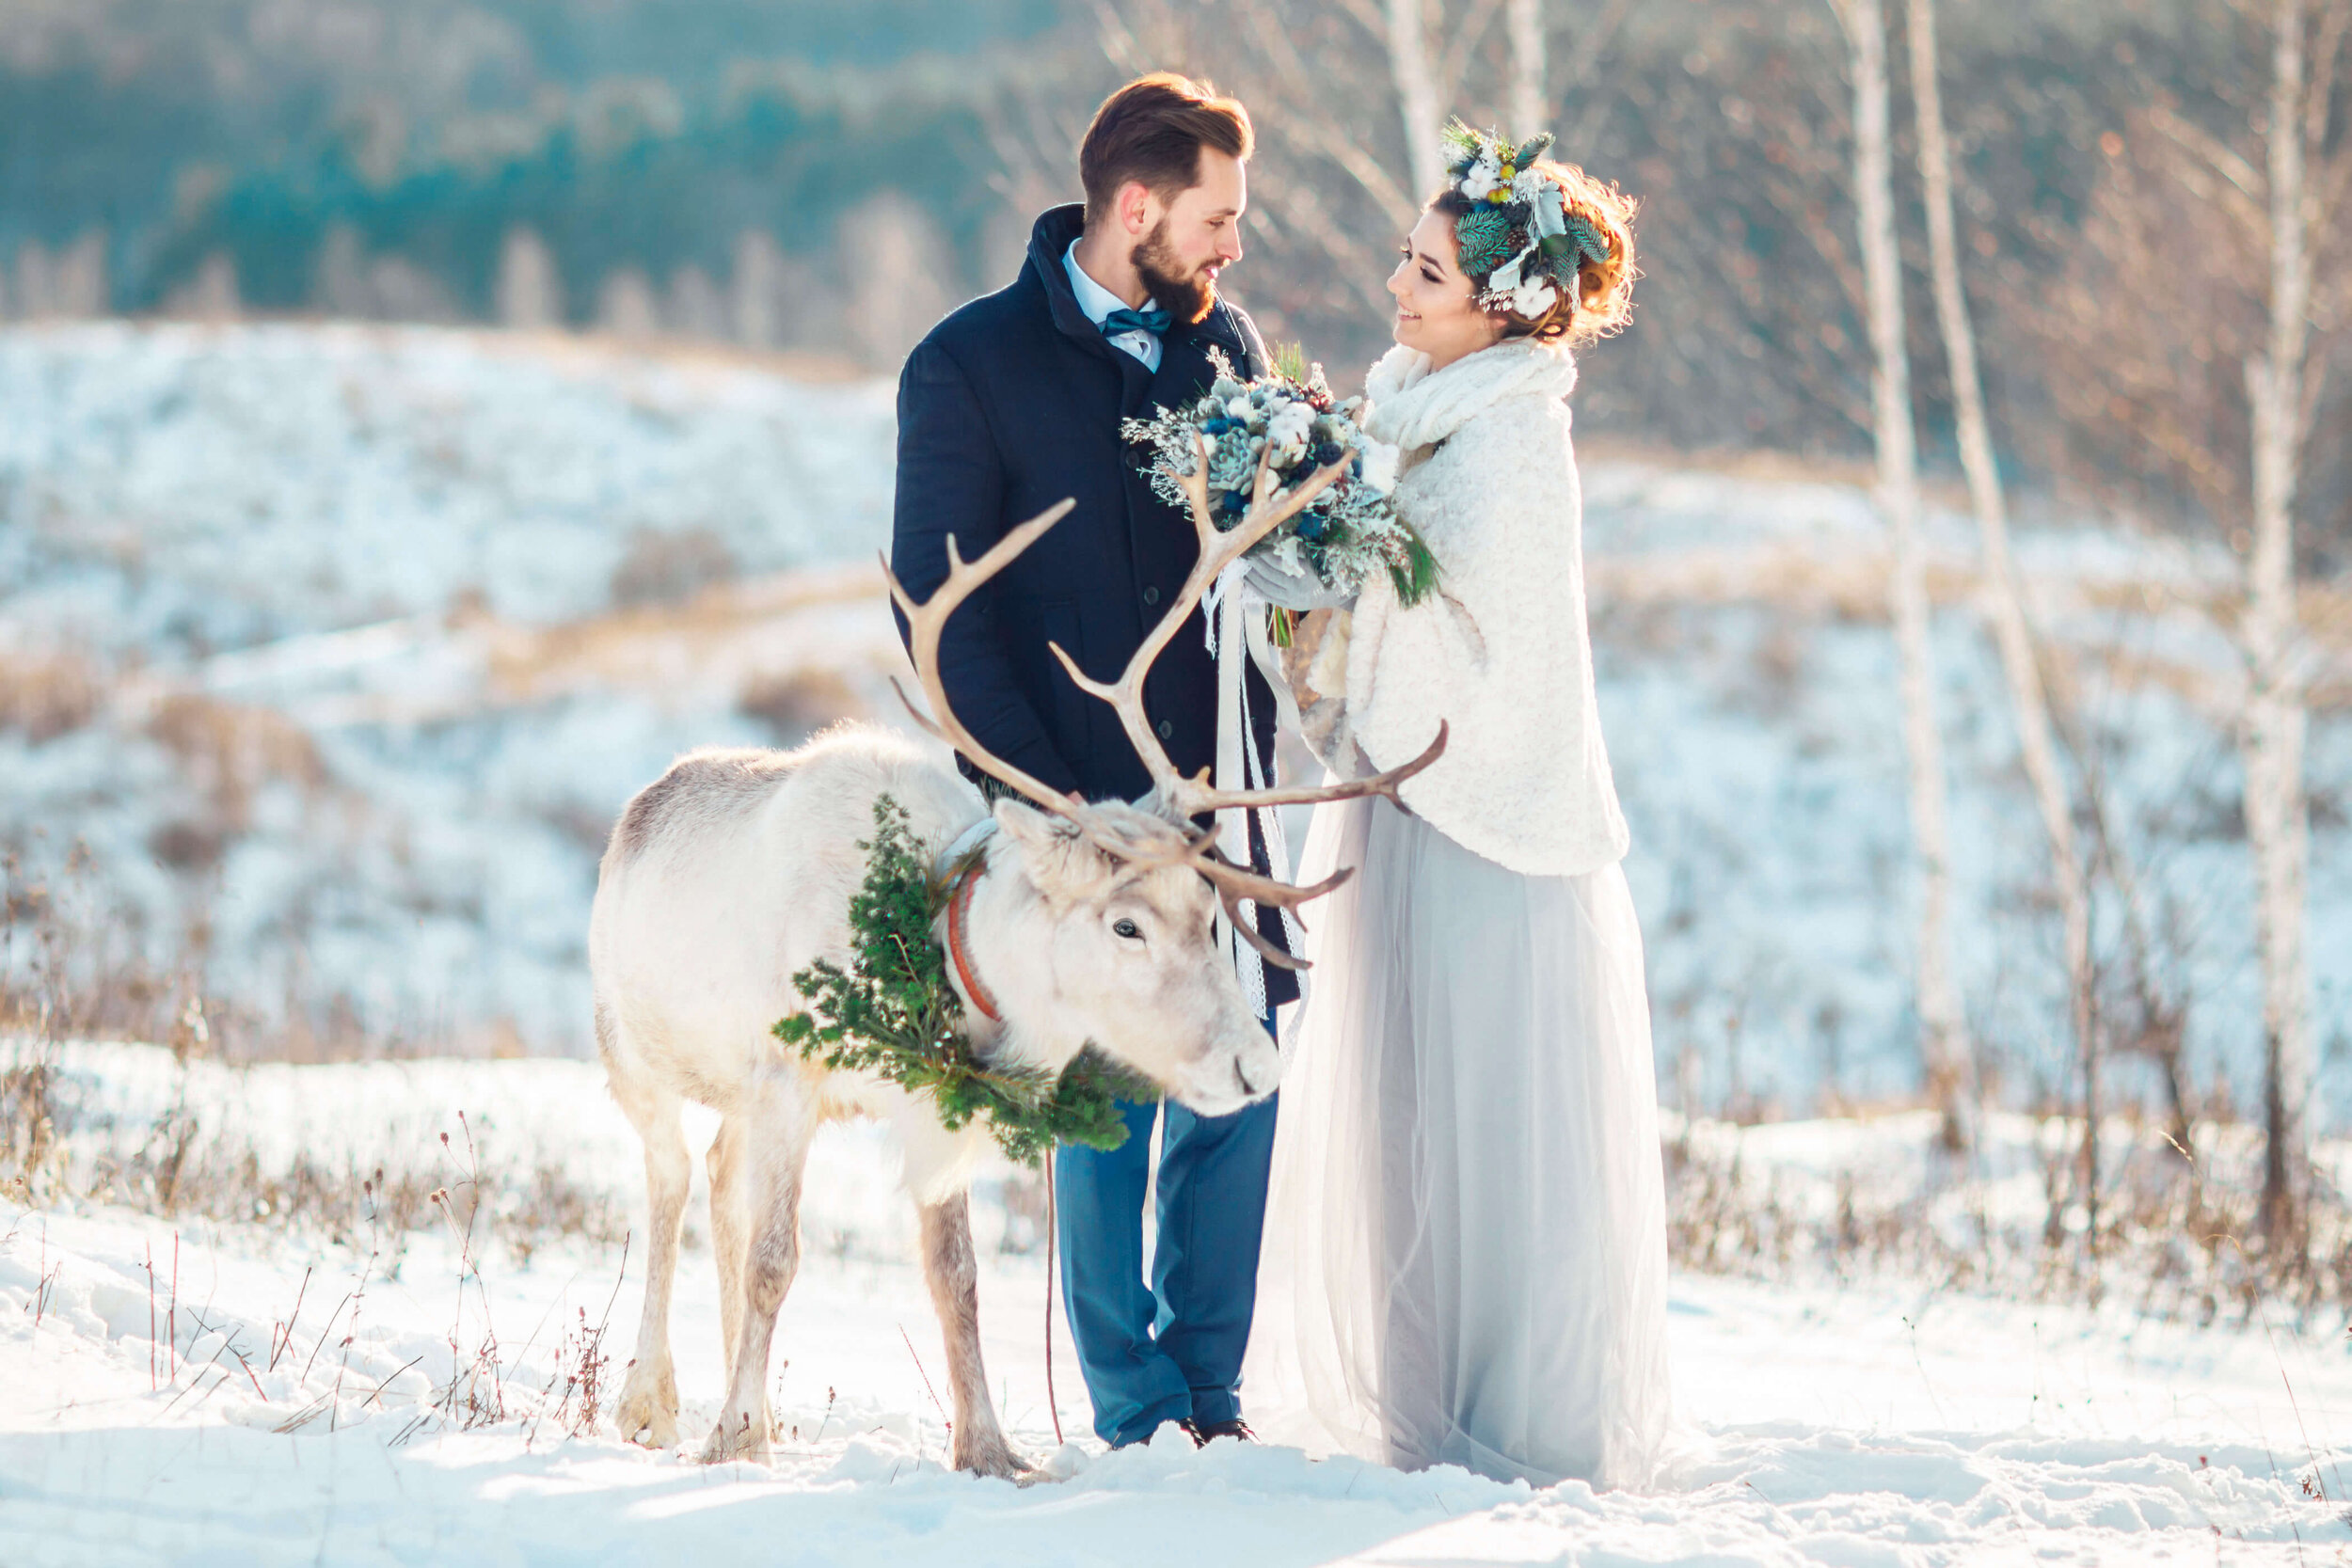 Bride and groom smiling in snowy field with elk.jpg